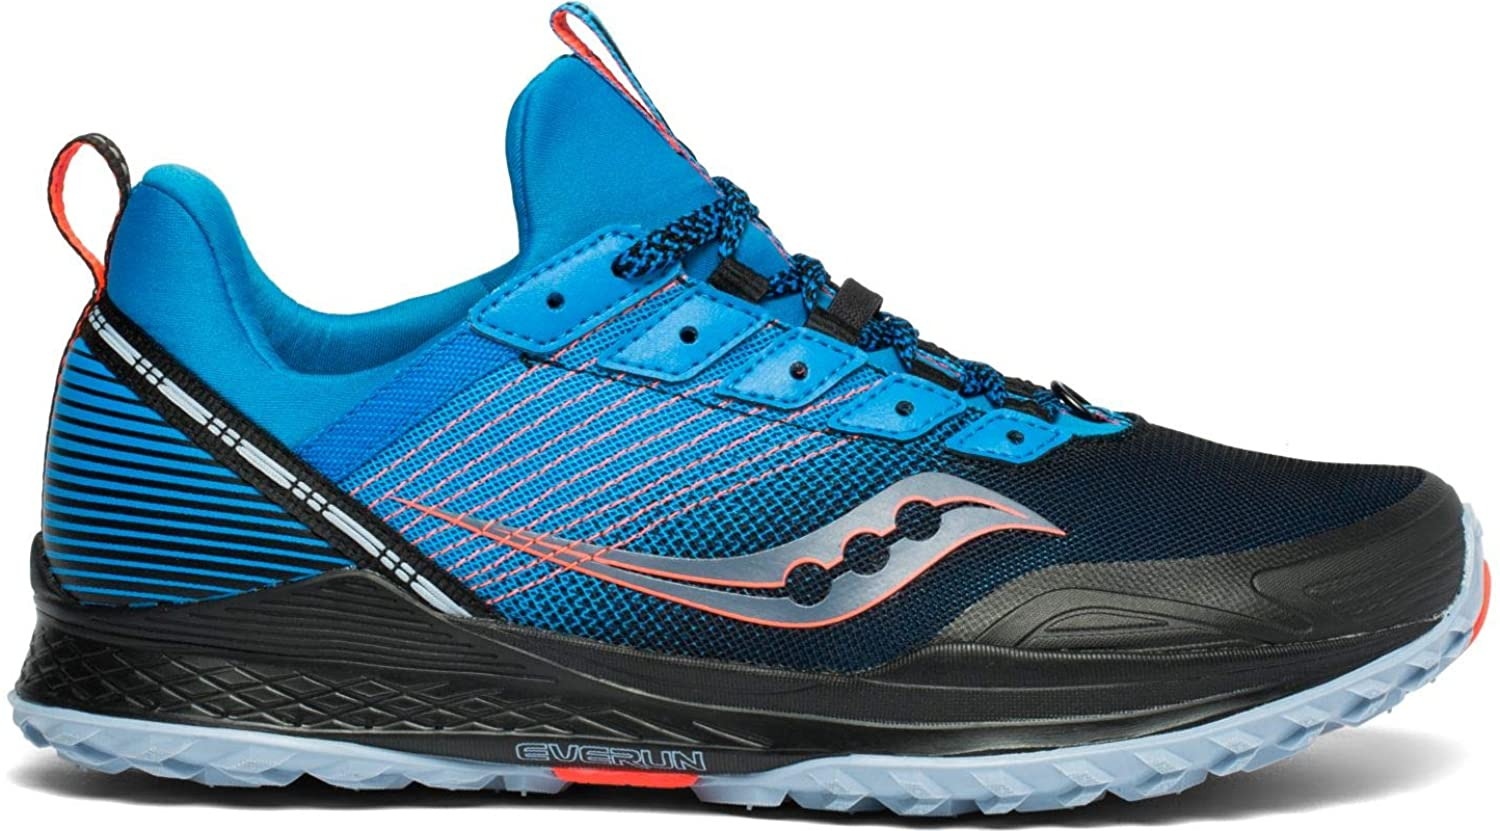 Saucony Mens Mad River TR Trail Running Shoe - Blue/Navy - 10